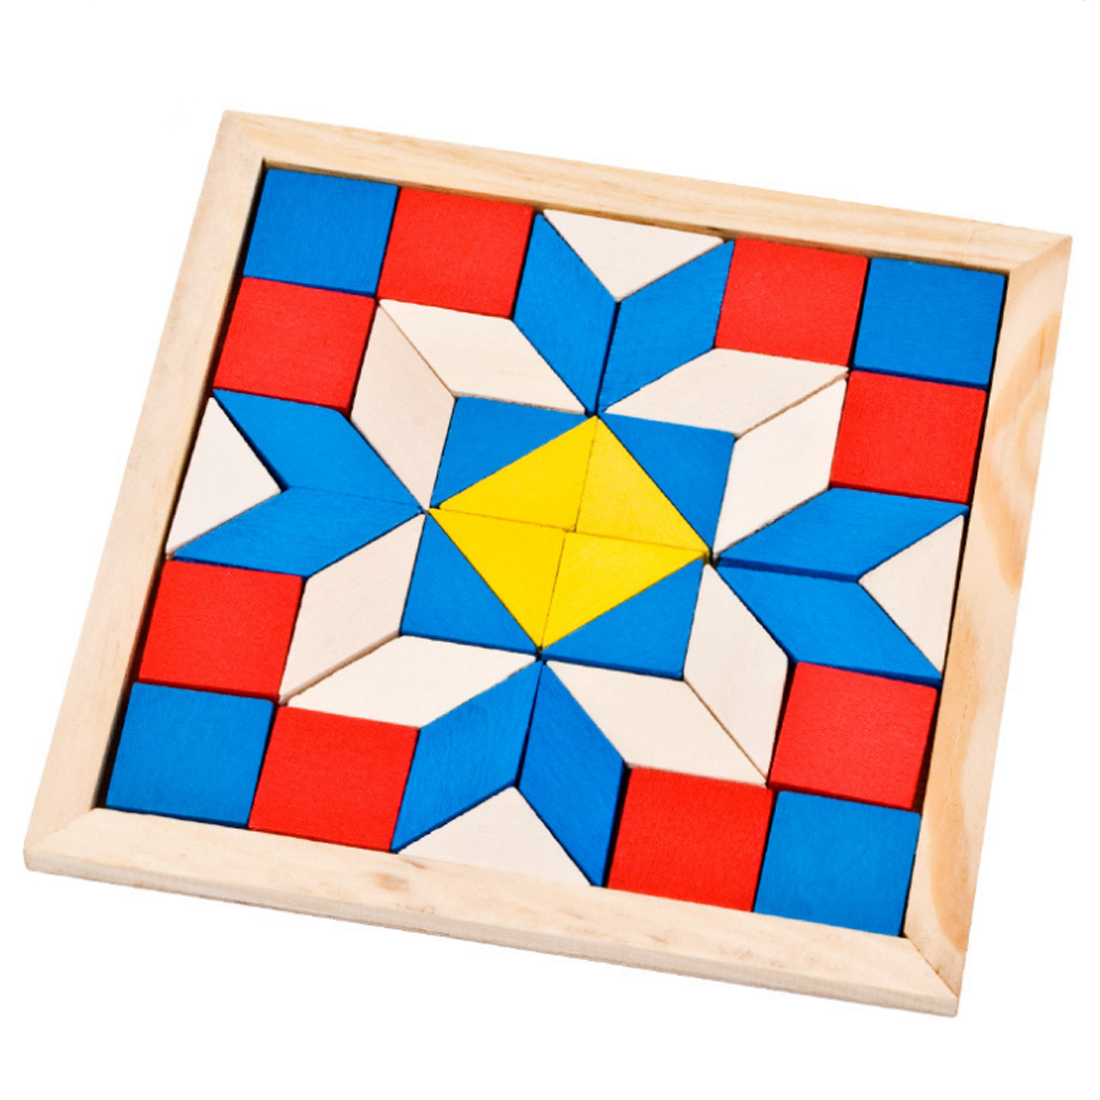 Wooden Jigsaw Puzzle Diamond Shaped Board Enlightening Wisdom Early Teaching Toy Educational Gift Toy For Children